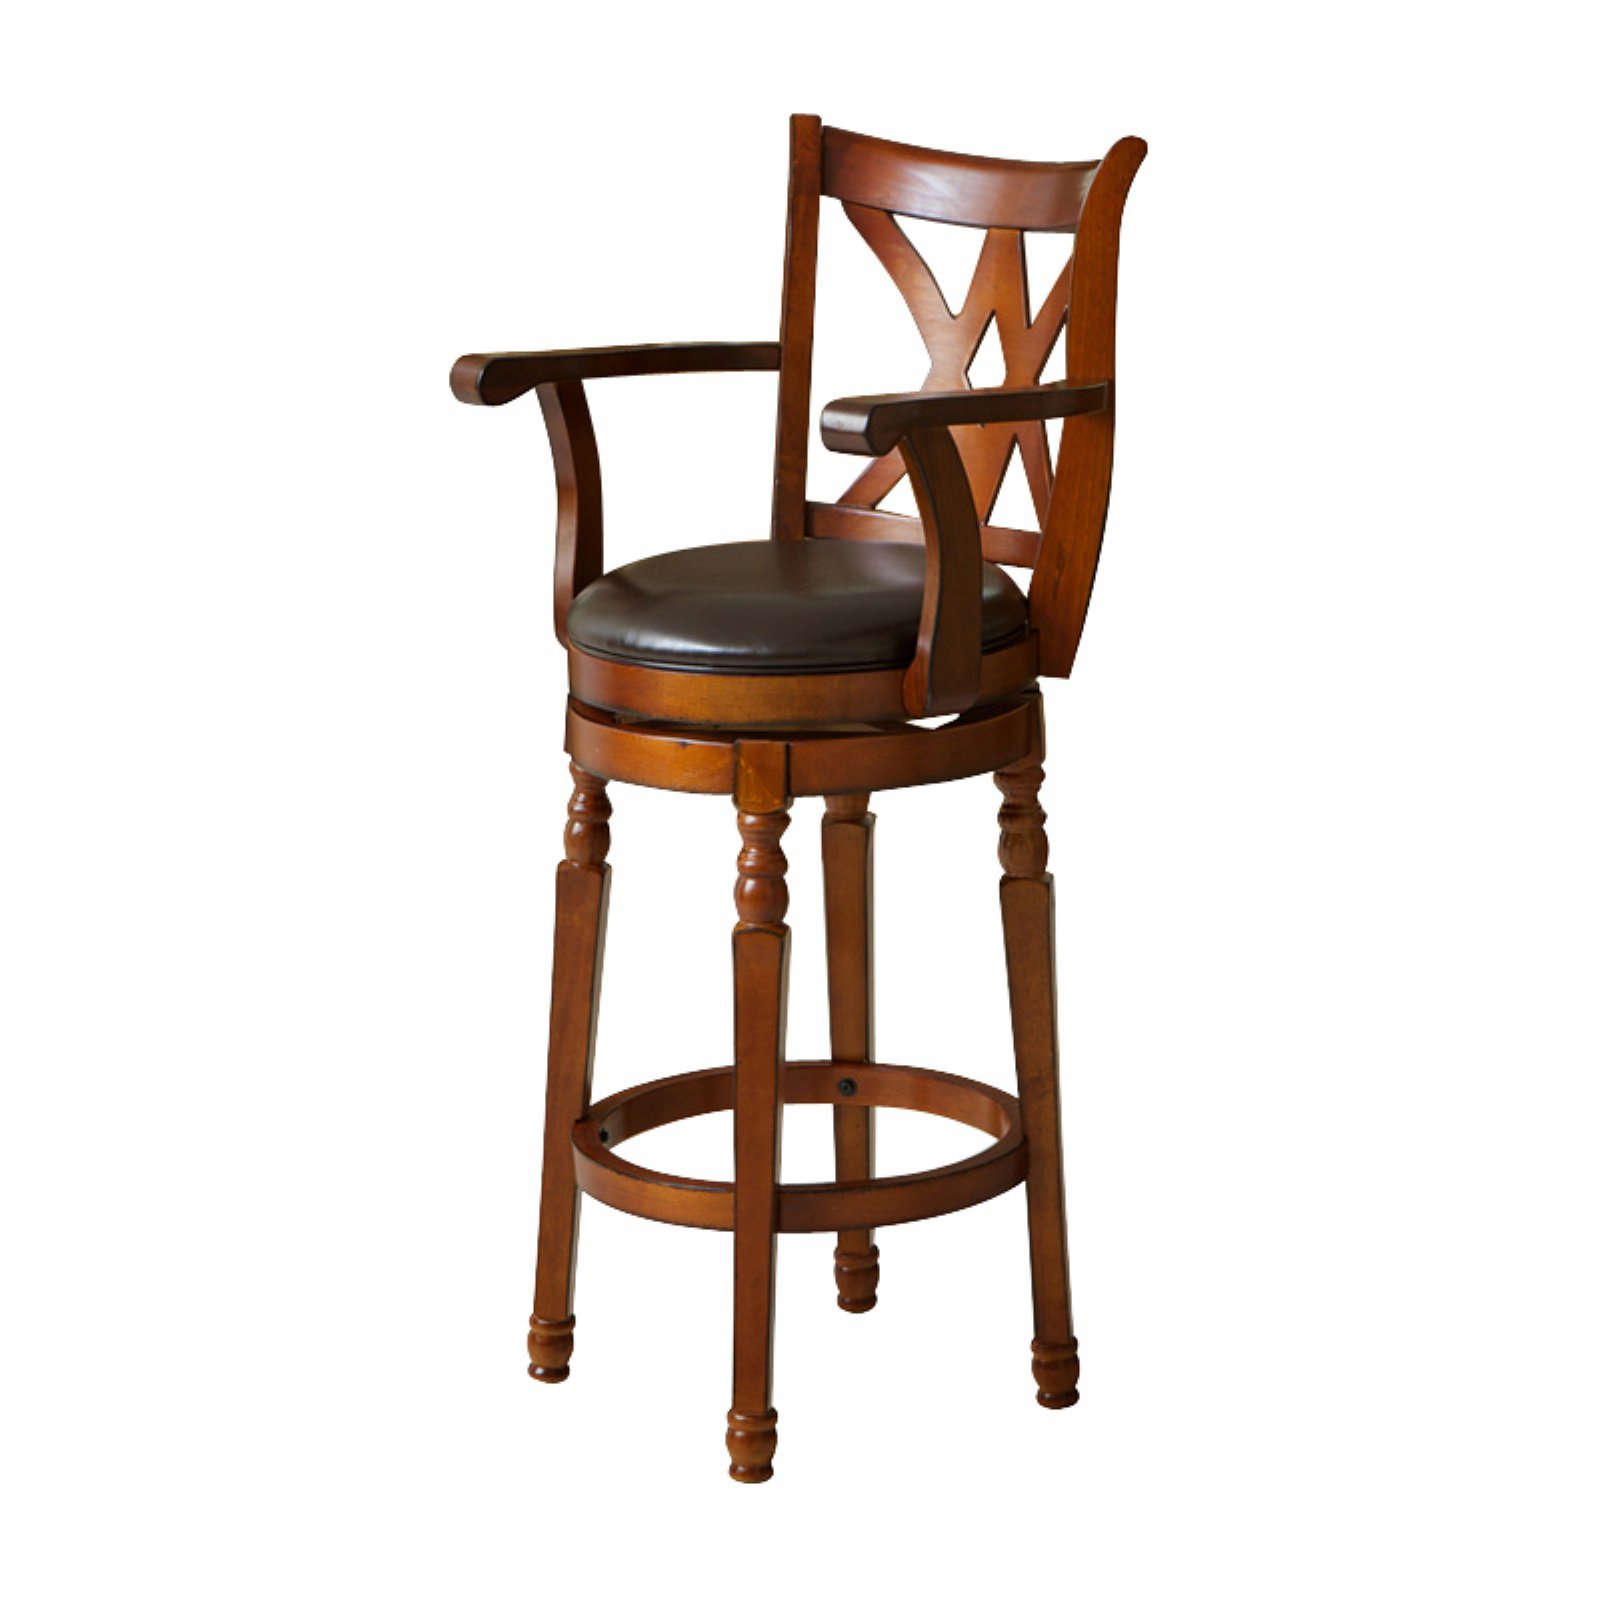 Eclipse Brown Swivel Bar Stool with Arms by Best Selling Home Decor Furniture LLC